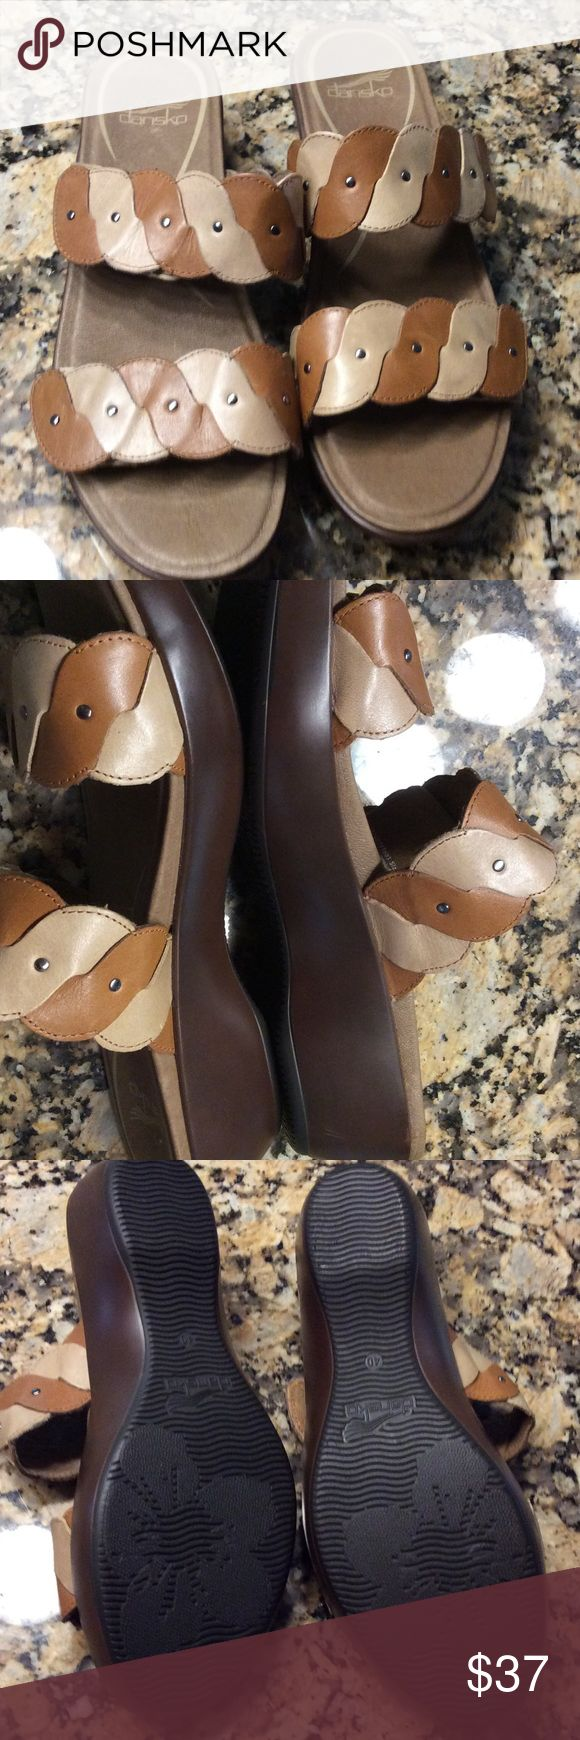 Dansko platform sandals.  NWOT ❤️WEEKEND SALE❤️ Very nice brown two-tone sandals.  Both straps are Velcro adjustable. 072705 Dansko Shoes Platforms